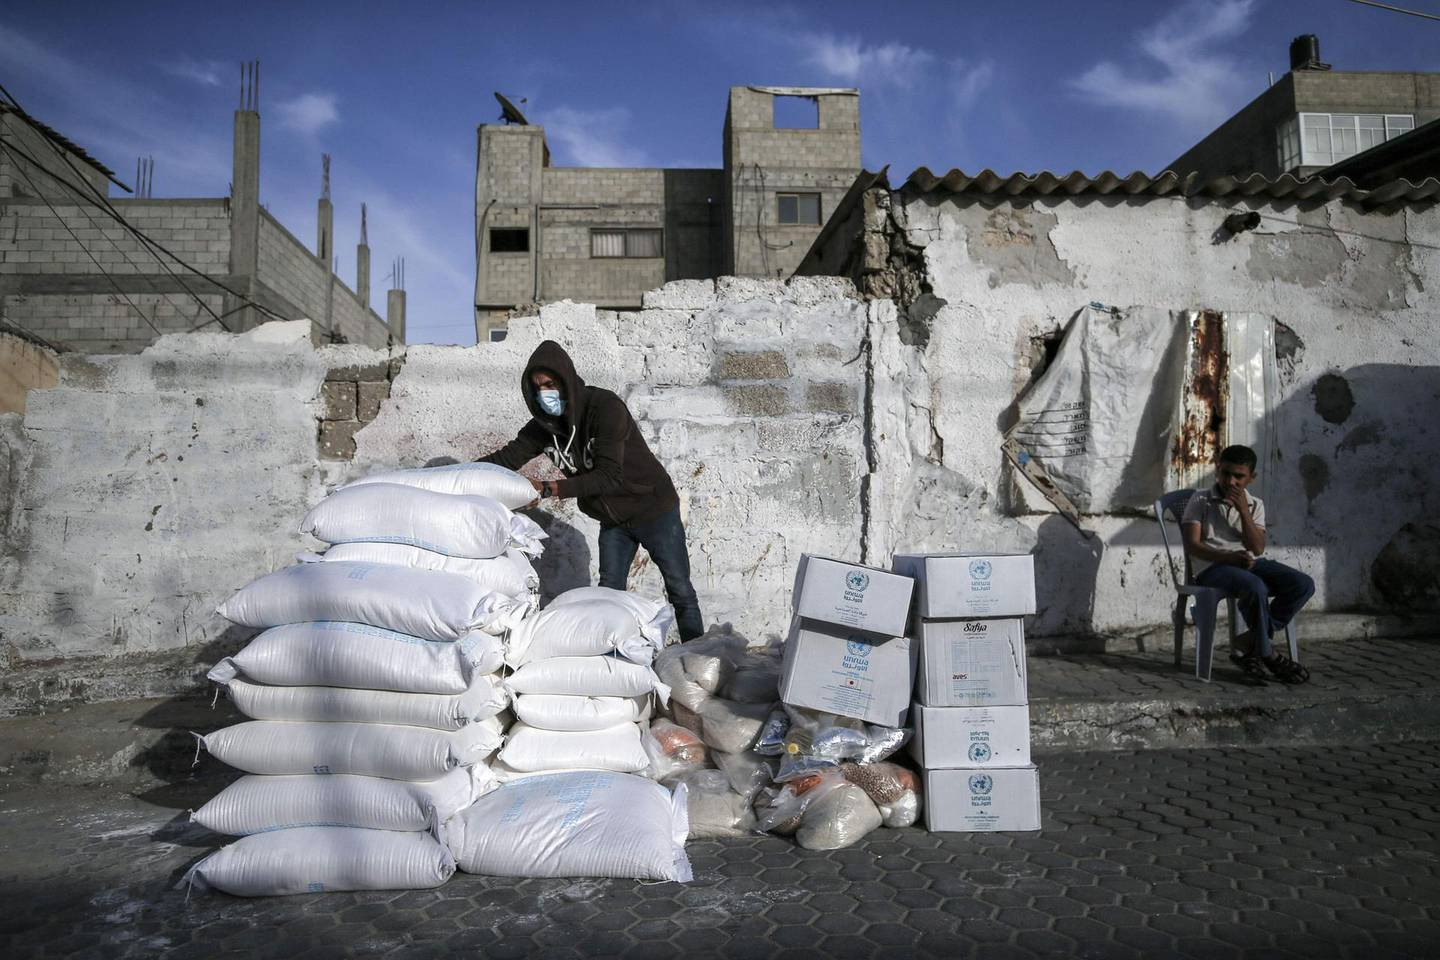 A Palestinian man wearing a protective mask sorts food aid provided by the United Nations Relief and Works Agency for Palestinian Refugees (UNRWA), to be delivered to refugee homes at the al-Shati camp, in Gaza city, on April 6, 2020, instead of the usual distribution at a UN center in the city, due to the COVID-19 pandemic. / AFP / MOHAMMED ABED